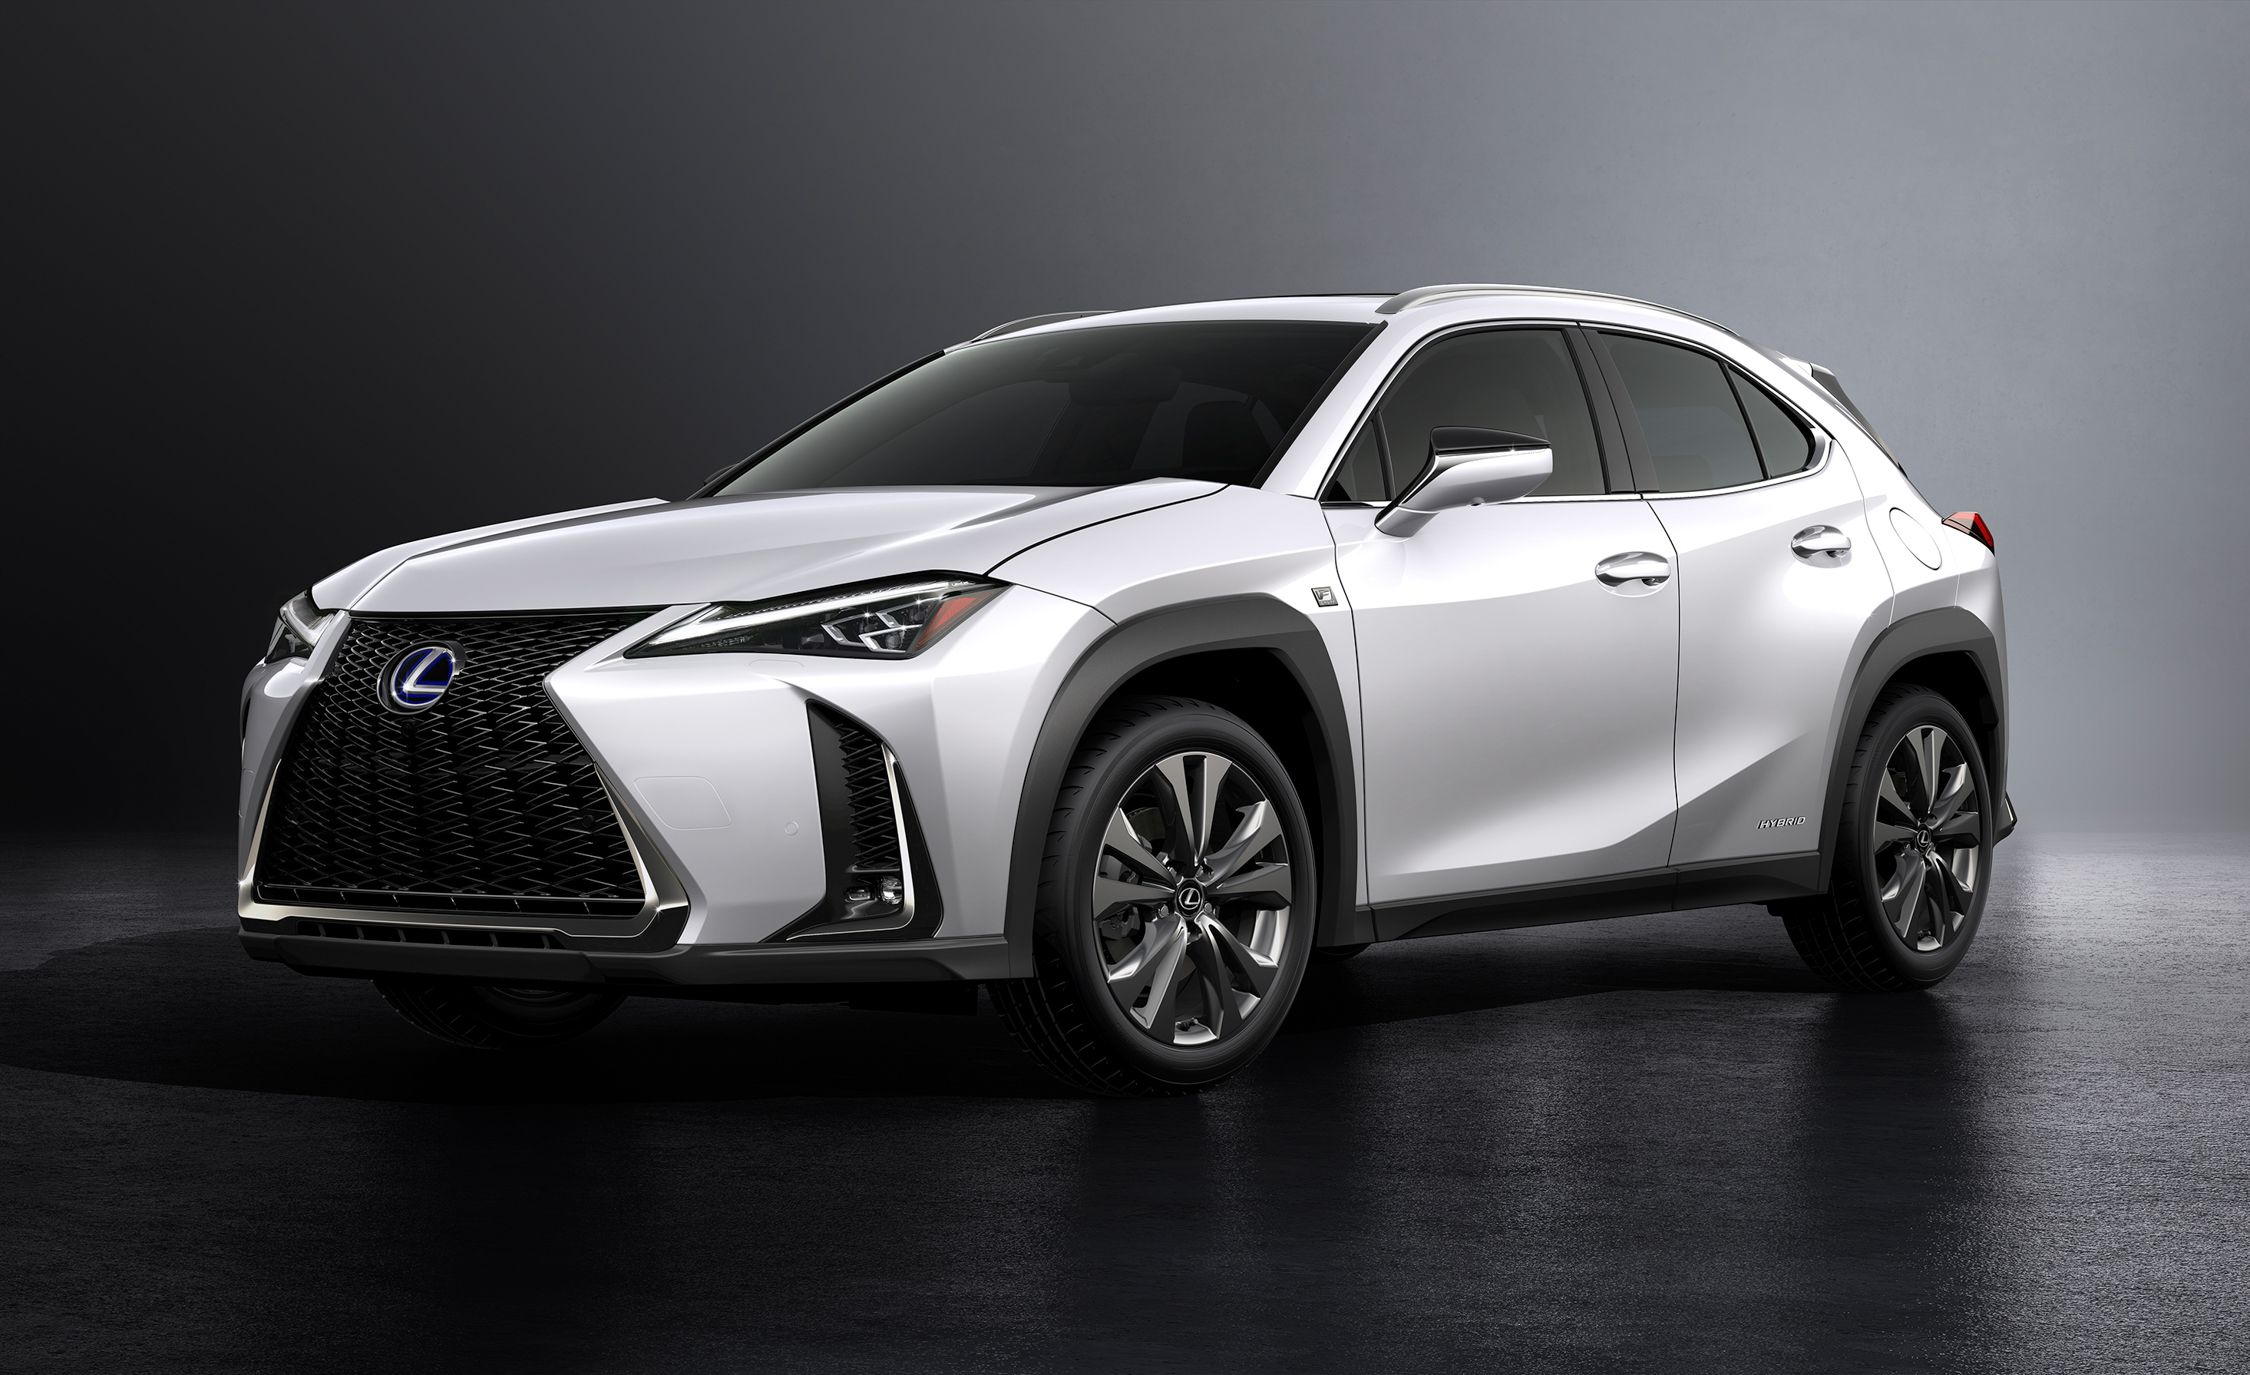 2019 lexus ux reviews | lexus ux price, photos, and specs | car and